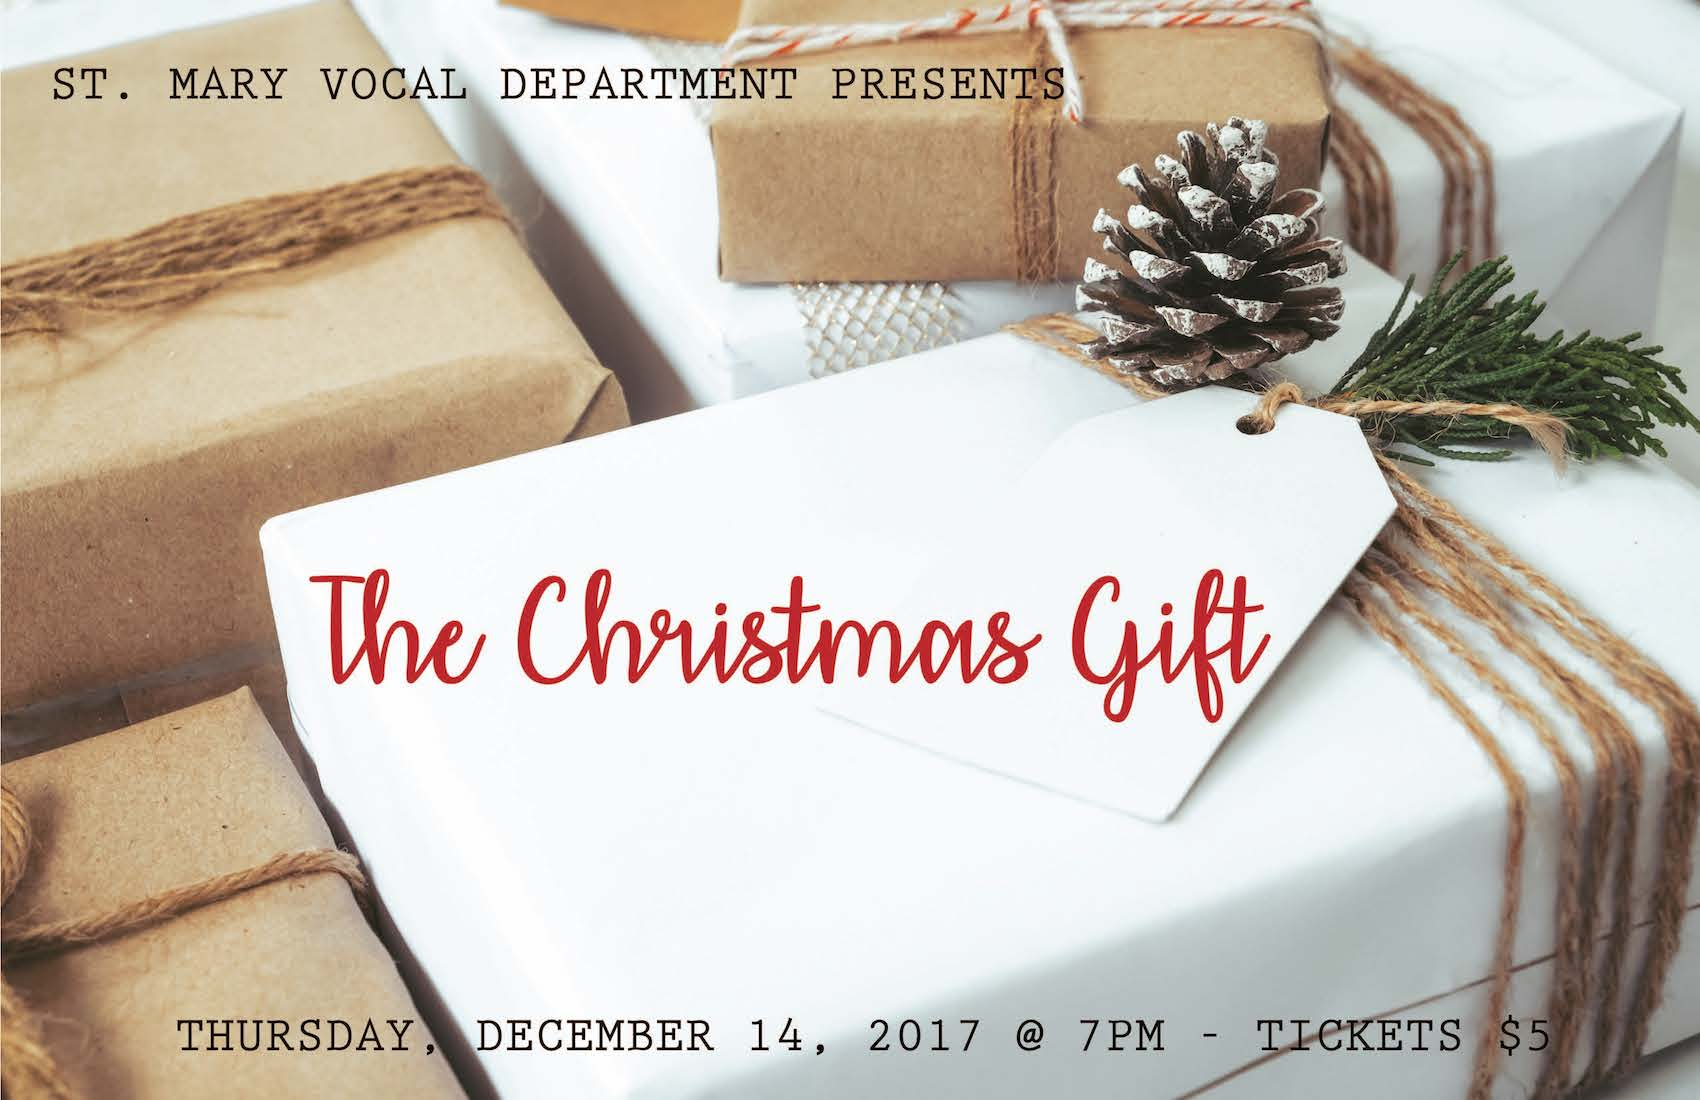 Christmas Vocal Music Concert